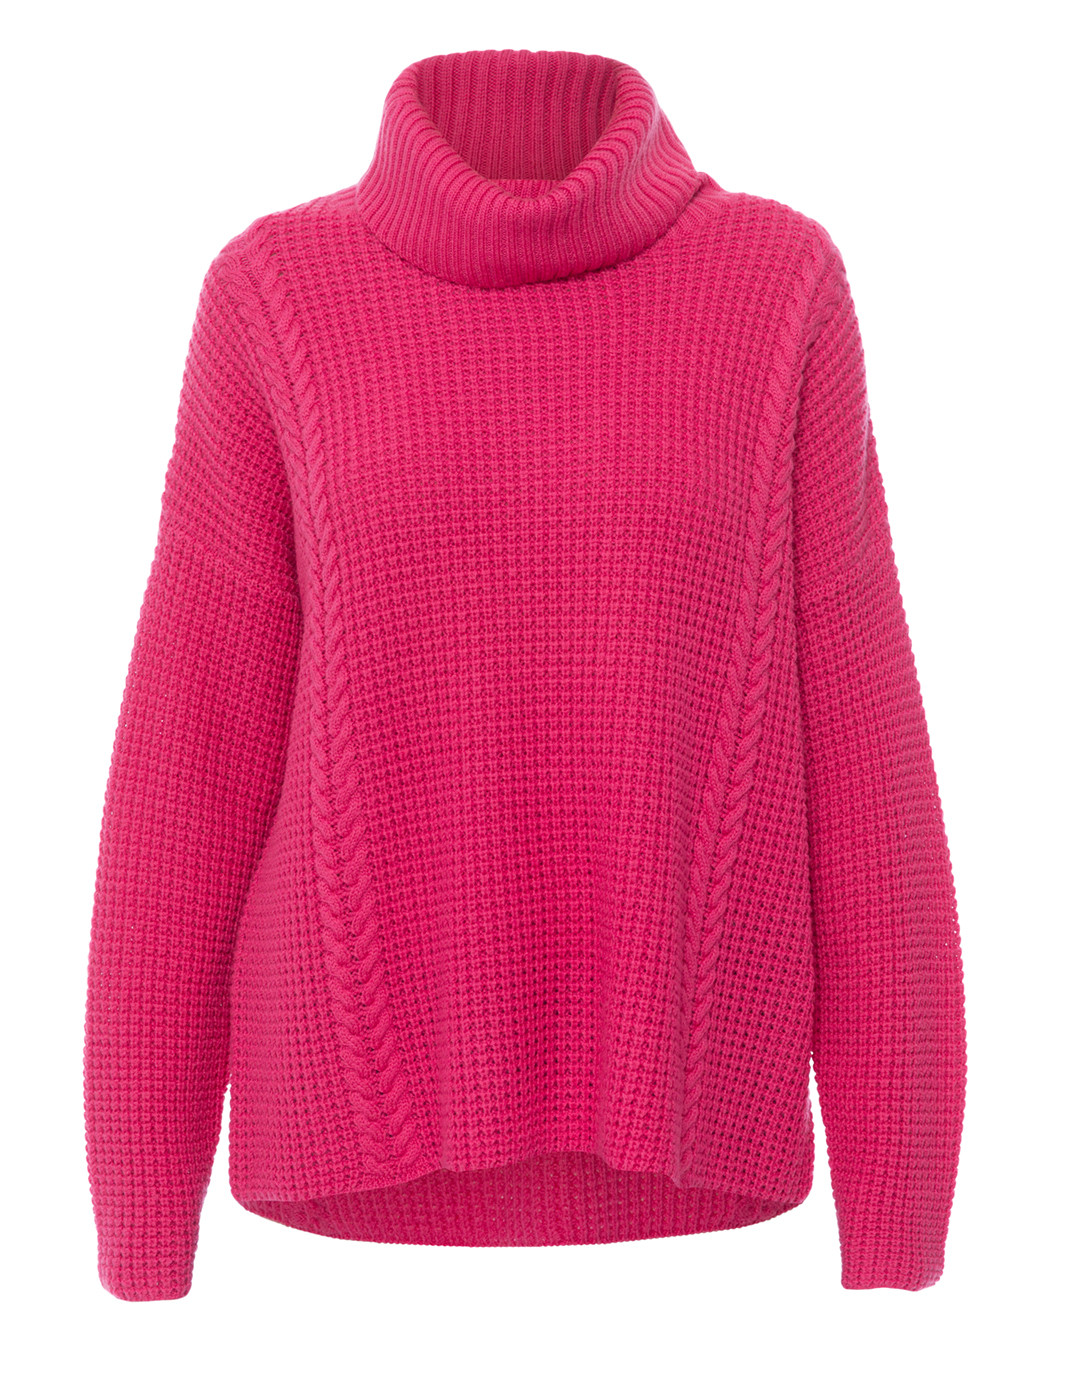 40ffda94a759 Hot Pink Cable Knit Merino Wool Sweater